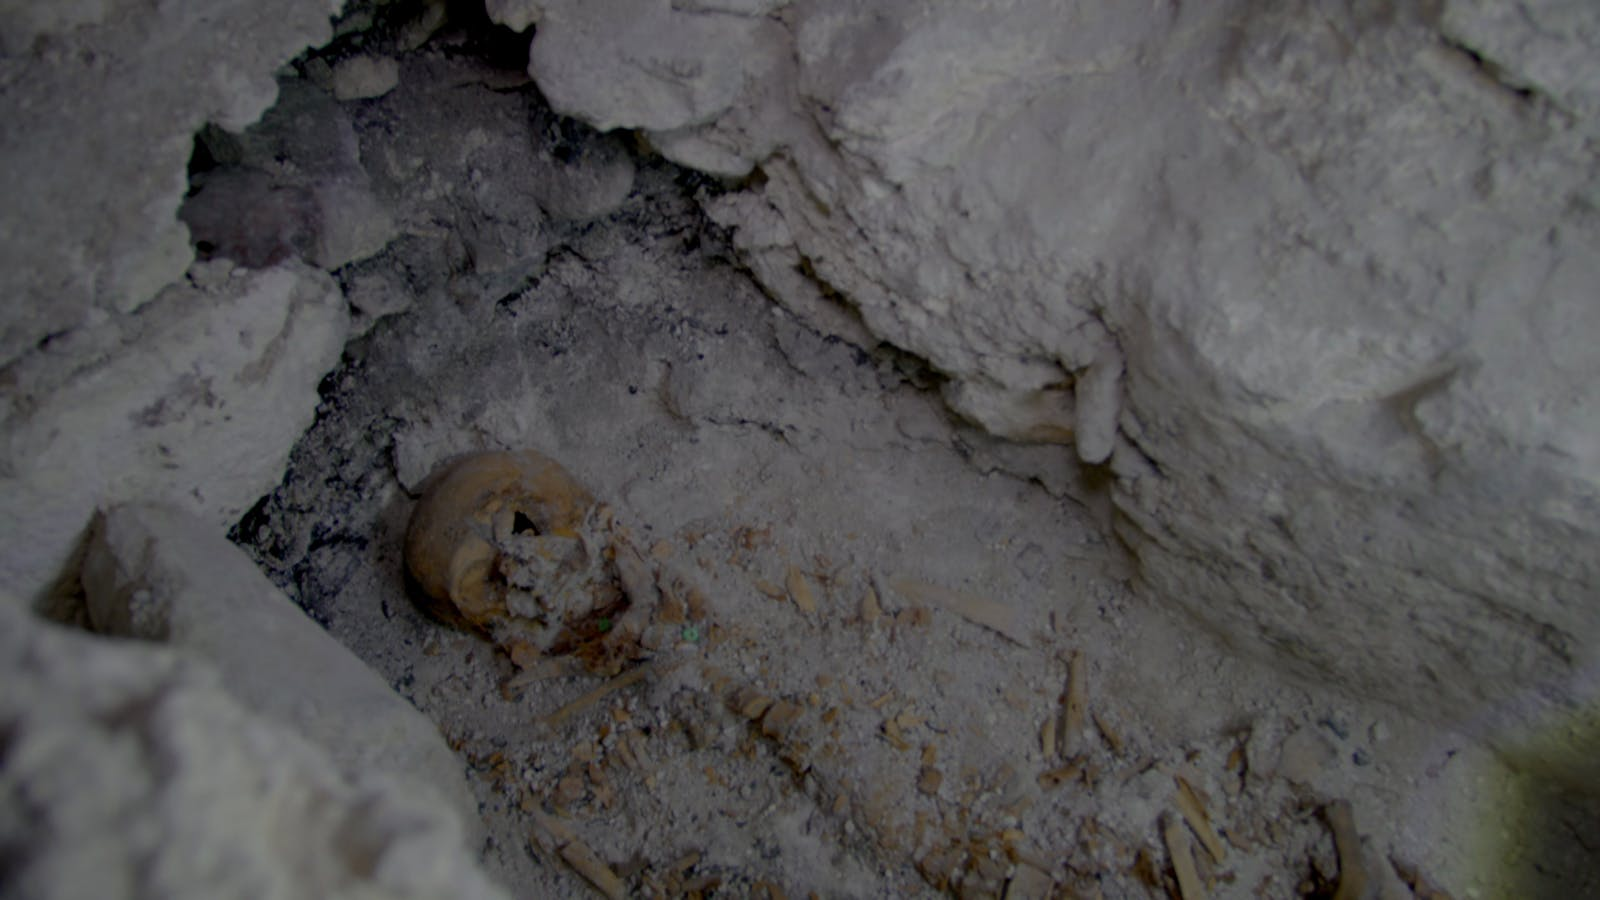 maya tomb discovered in belize